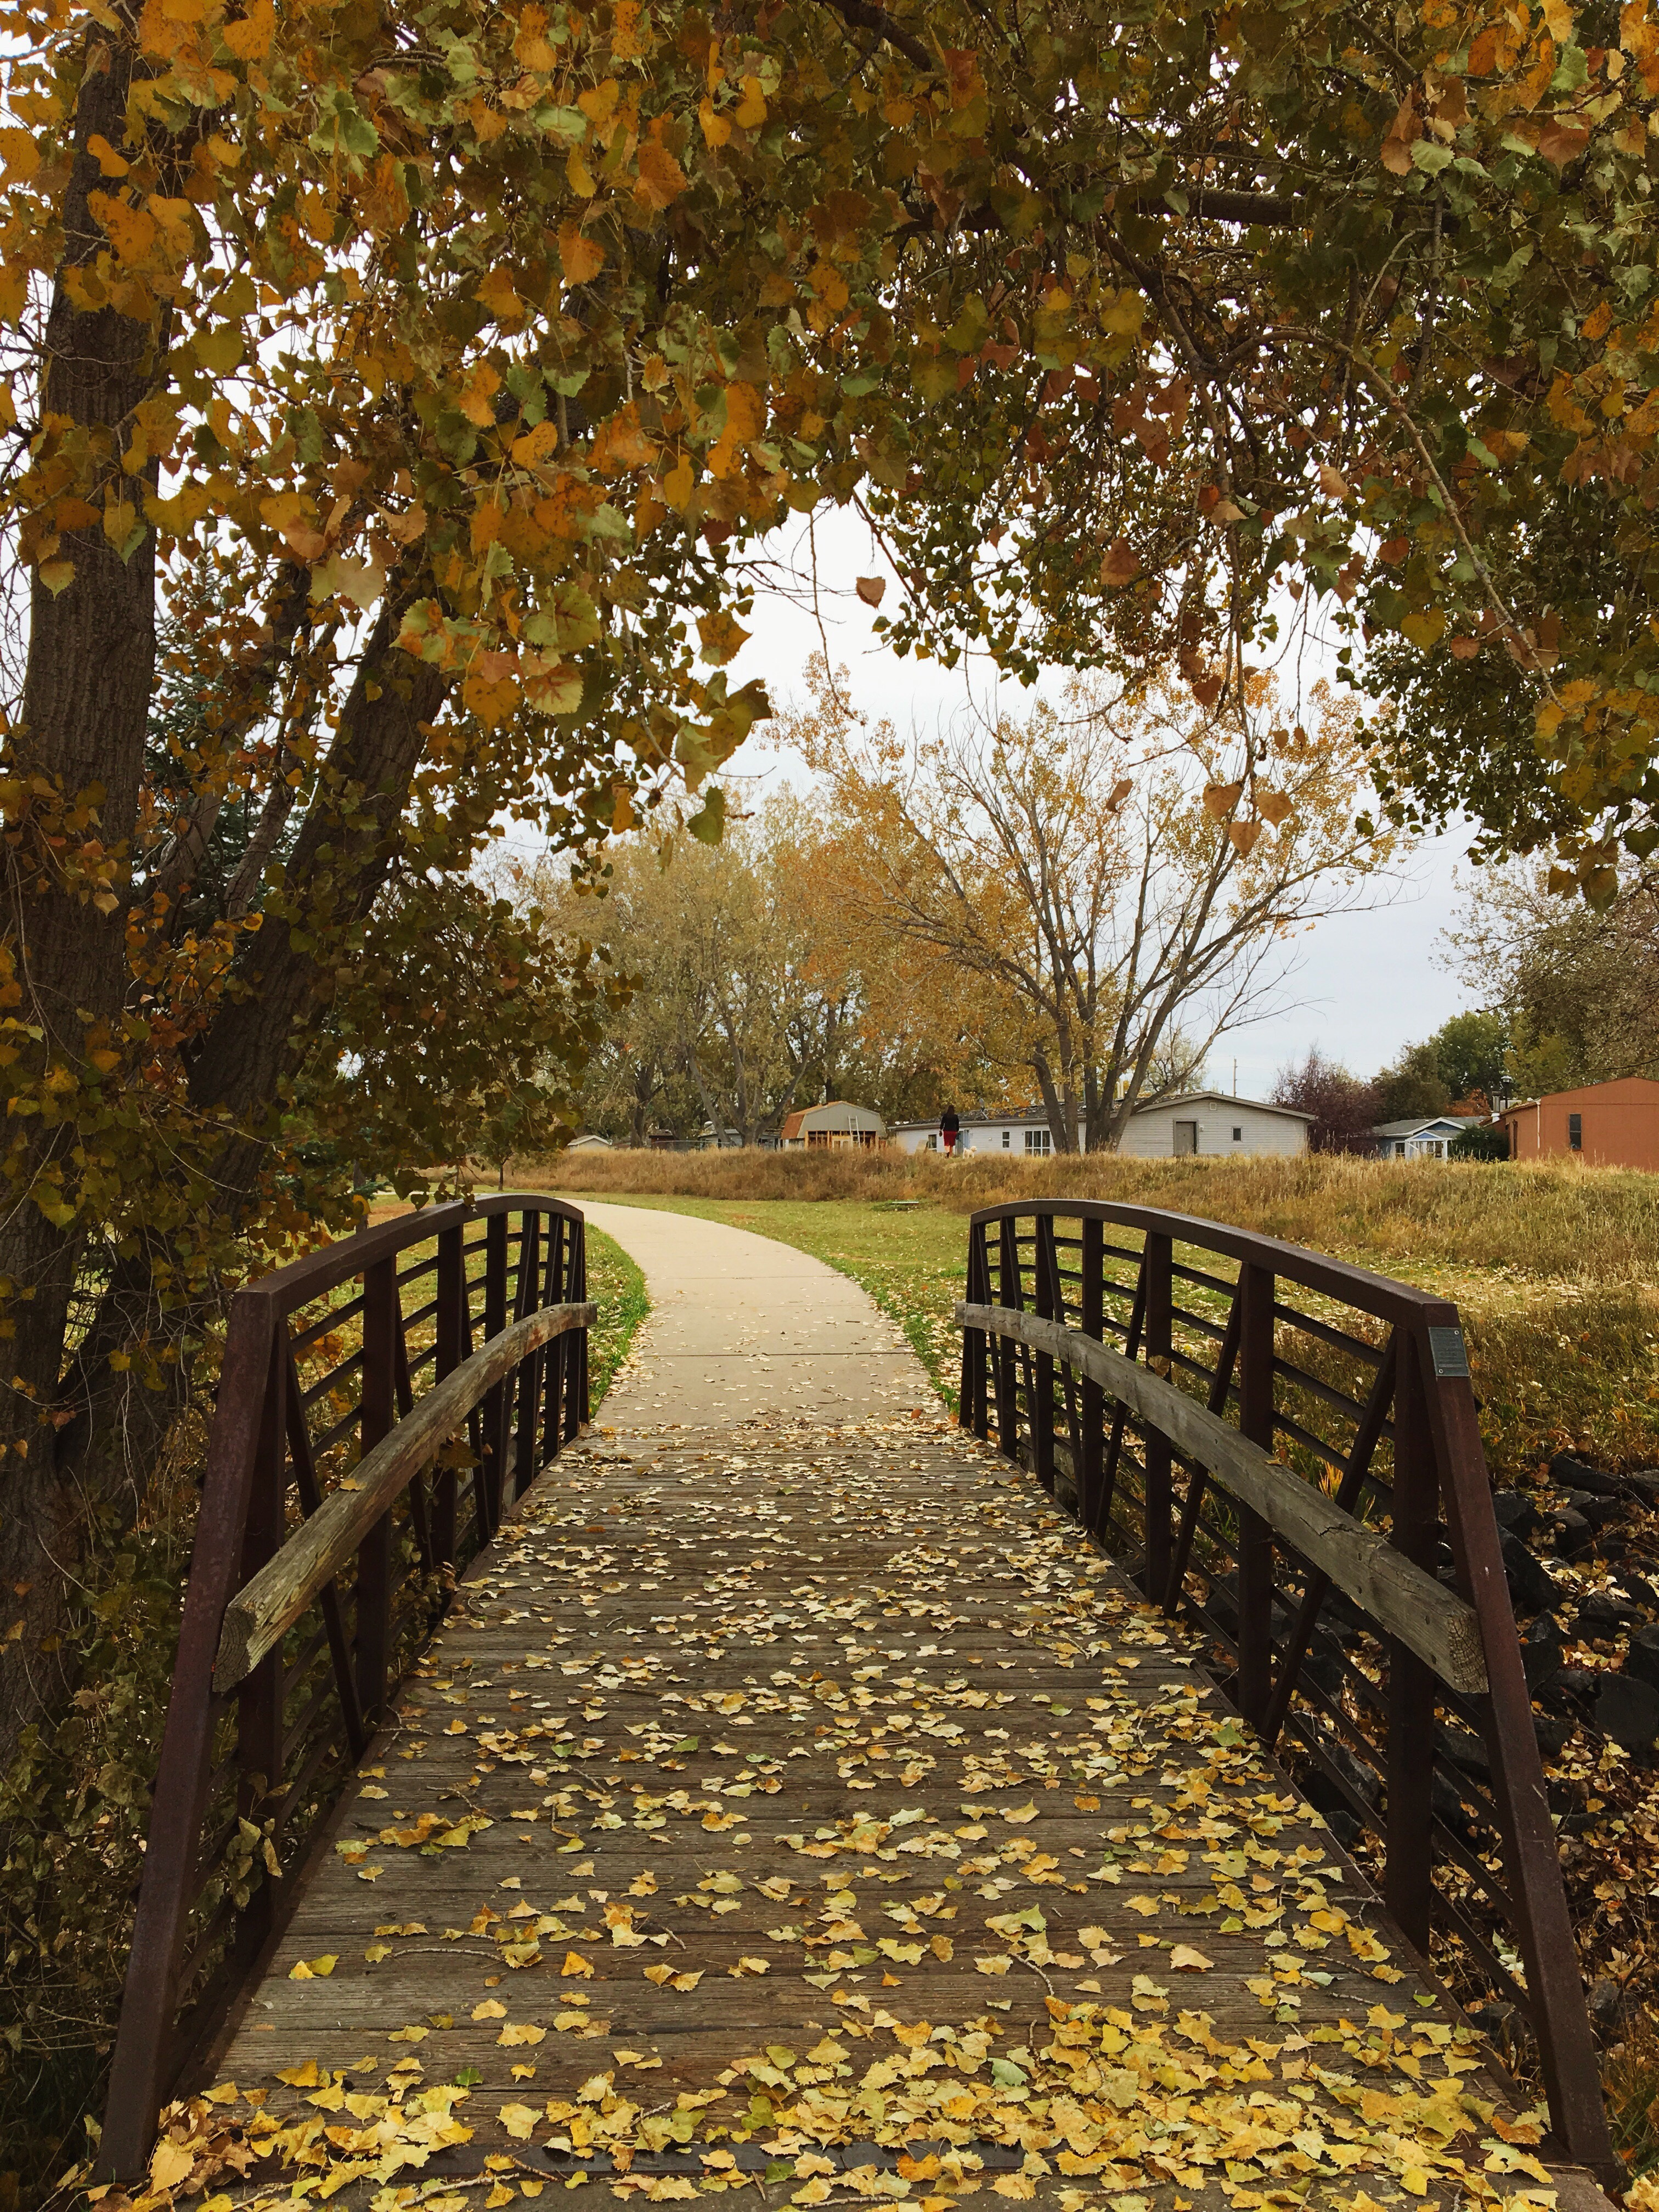 Wooden bridge and autumn leaves